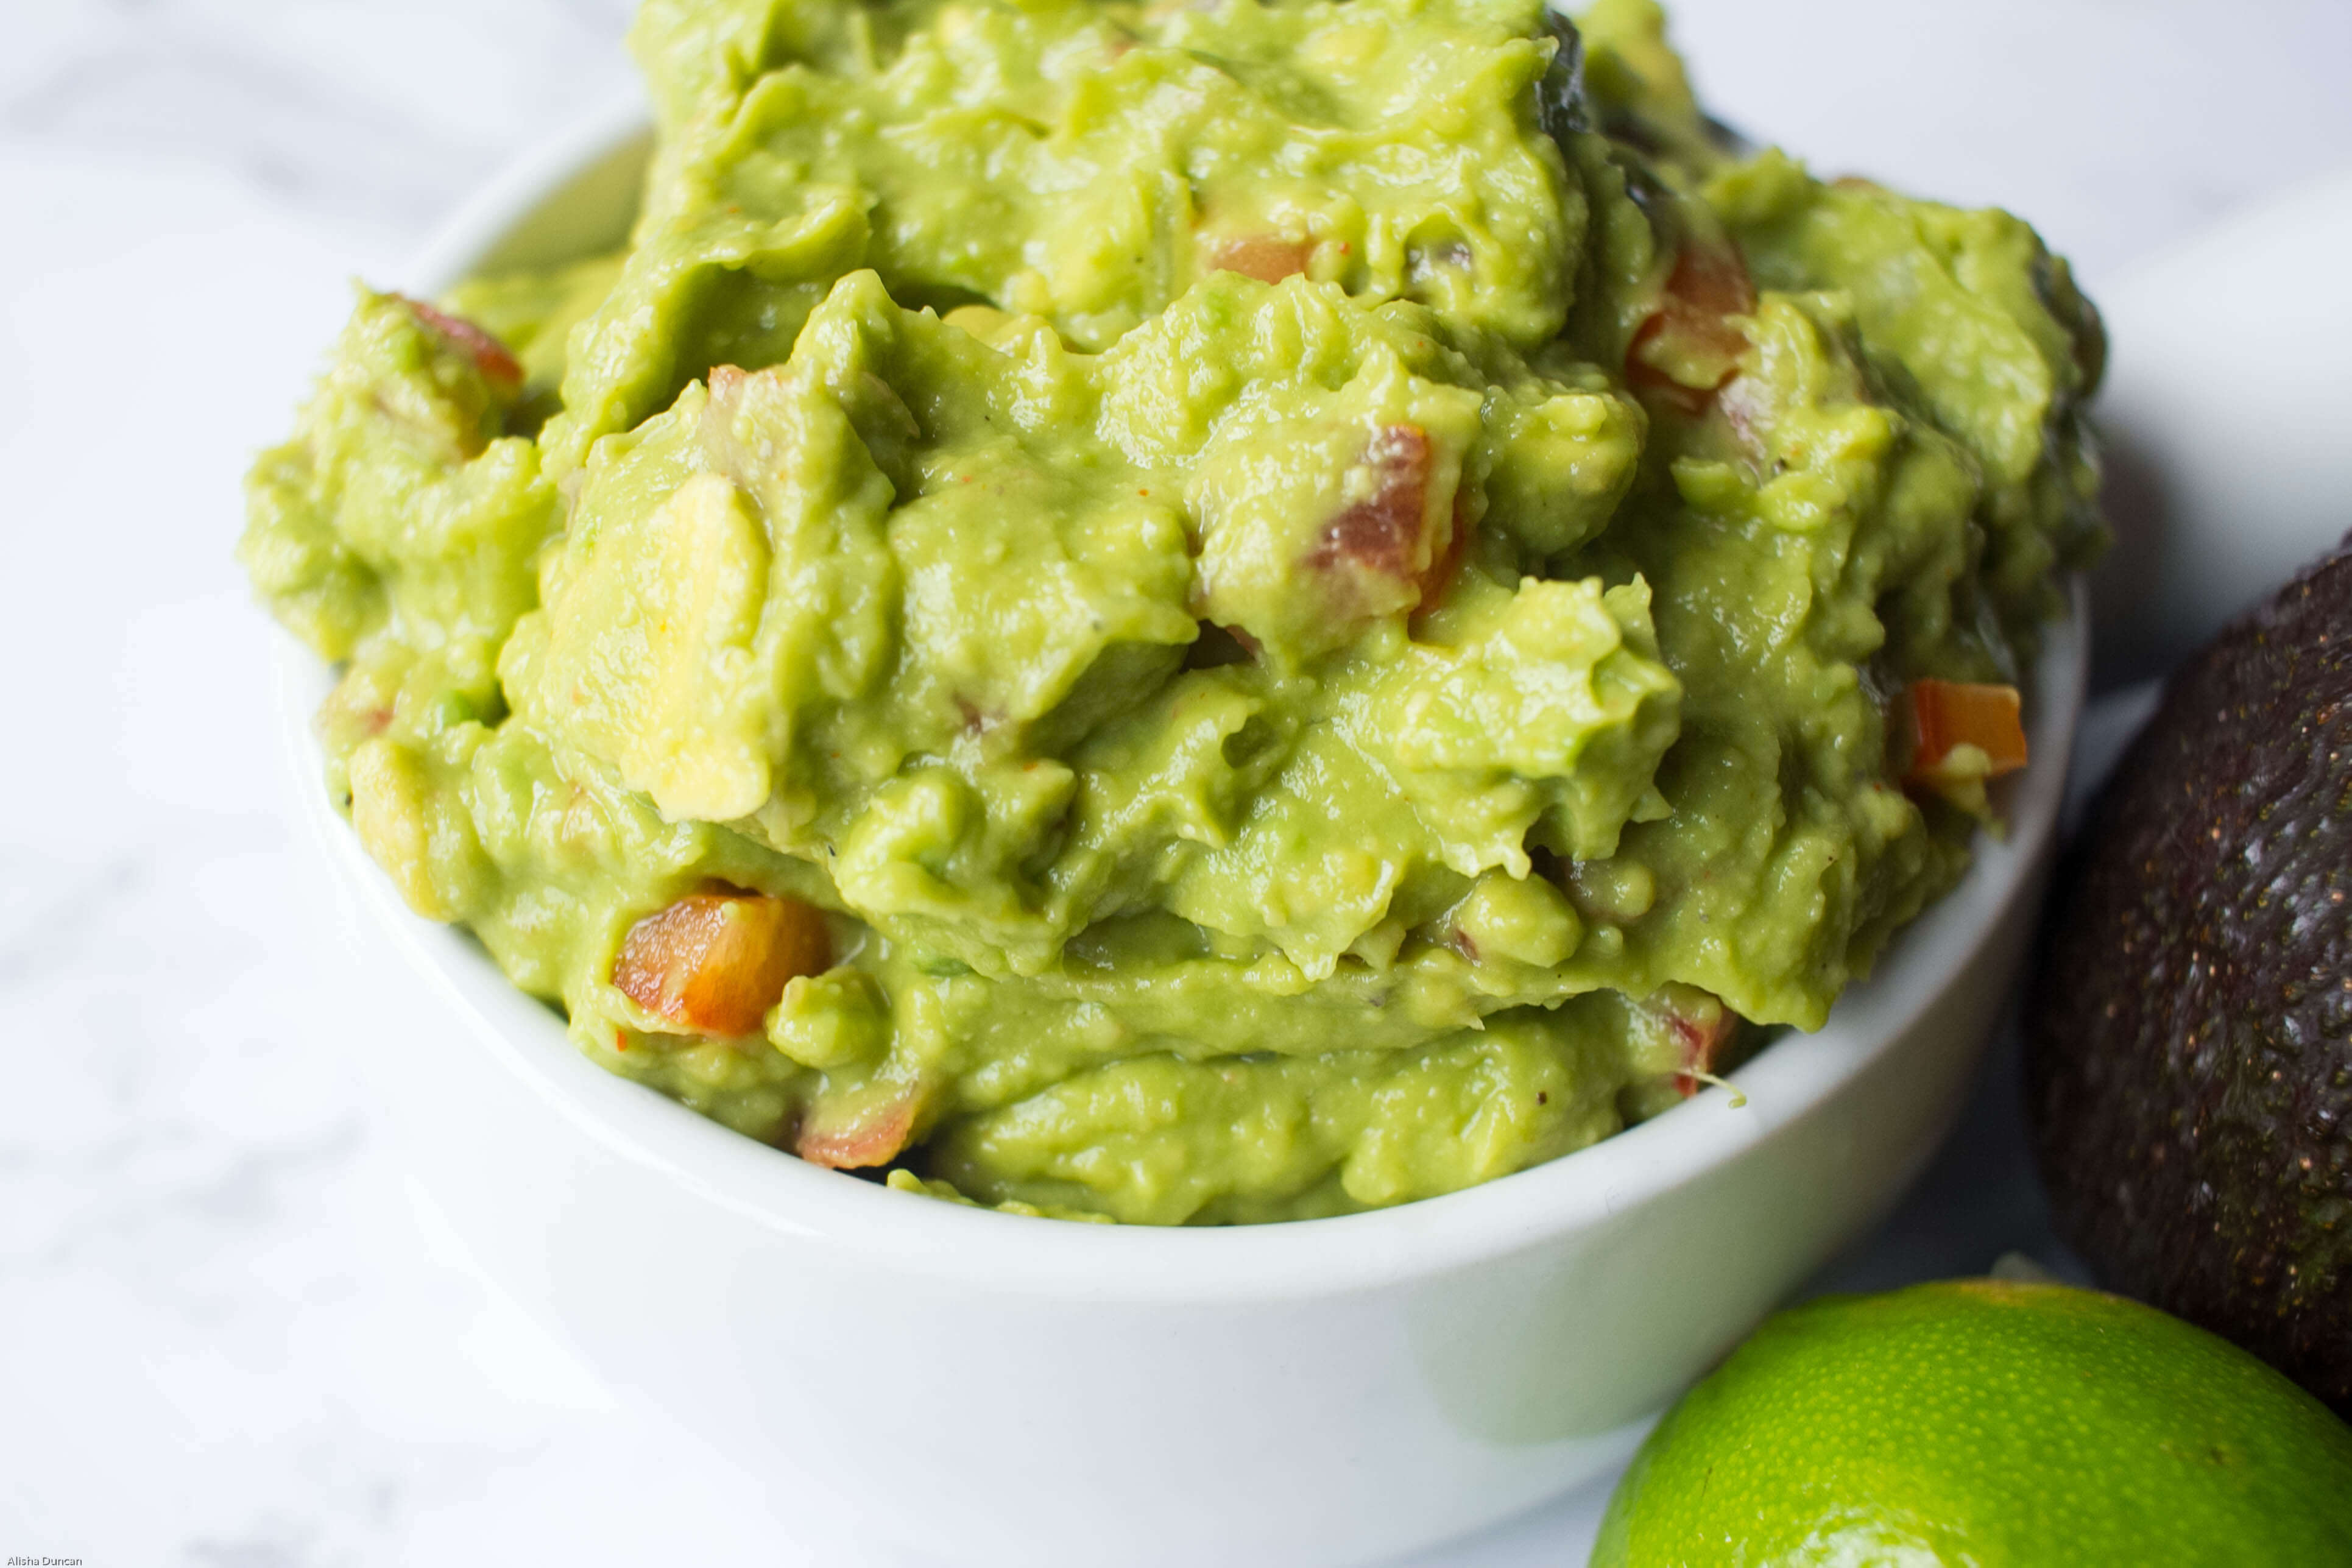 TOTS Family, Parenting, Kids, Food, Crafts, DIY and Travel IMG_6073 Quick and Easy Guacamole Recipe Appetizers Food Miscellaneous Recipes TOTS Family  recipe Guacamole